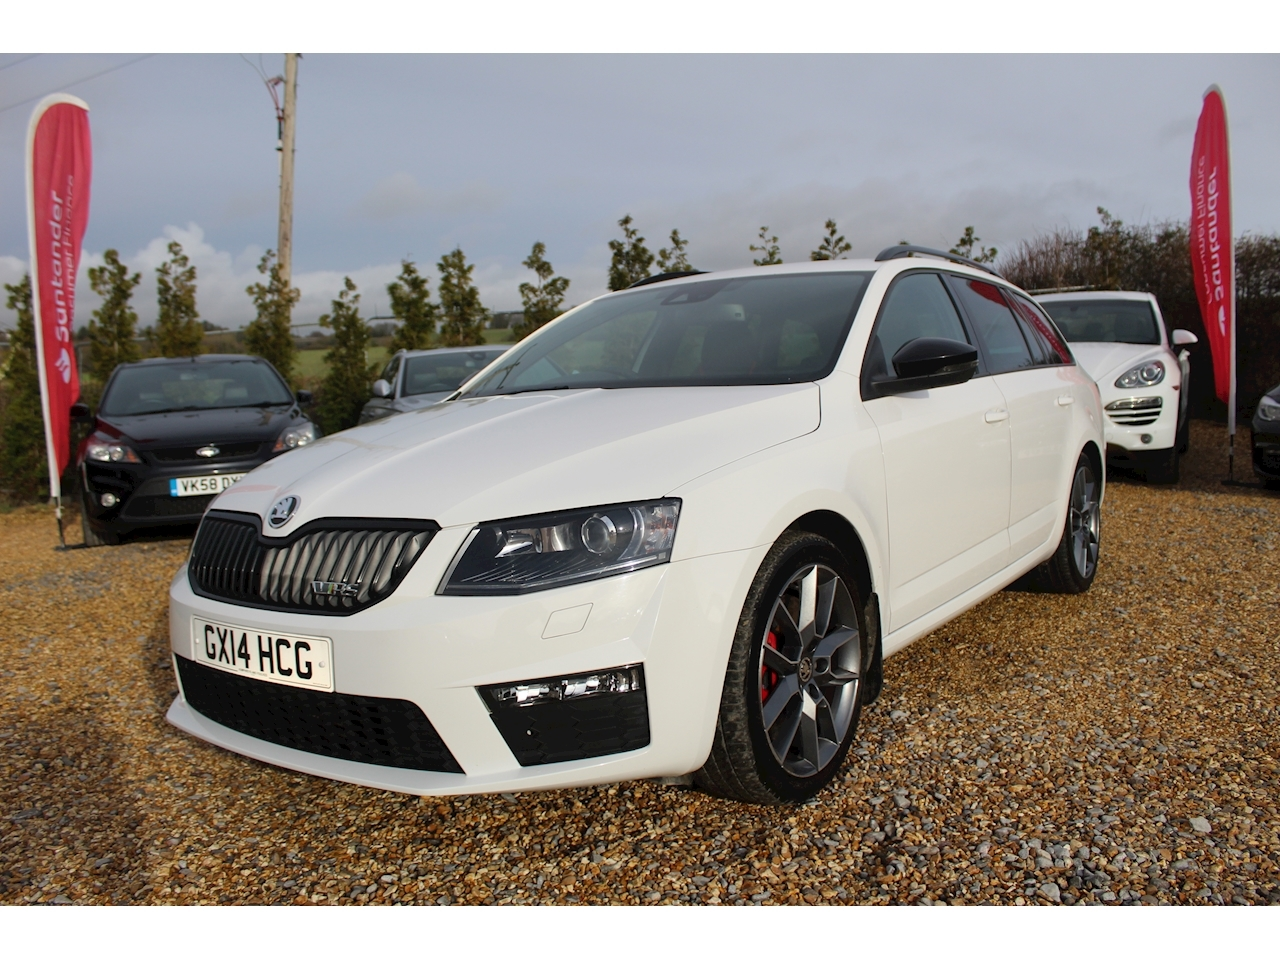 Skoda Octavia Vrs Tsi 2.0 5dr Estate Manual Petrol